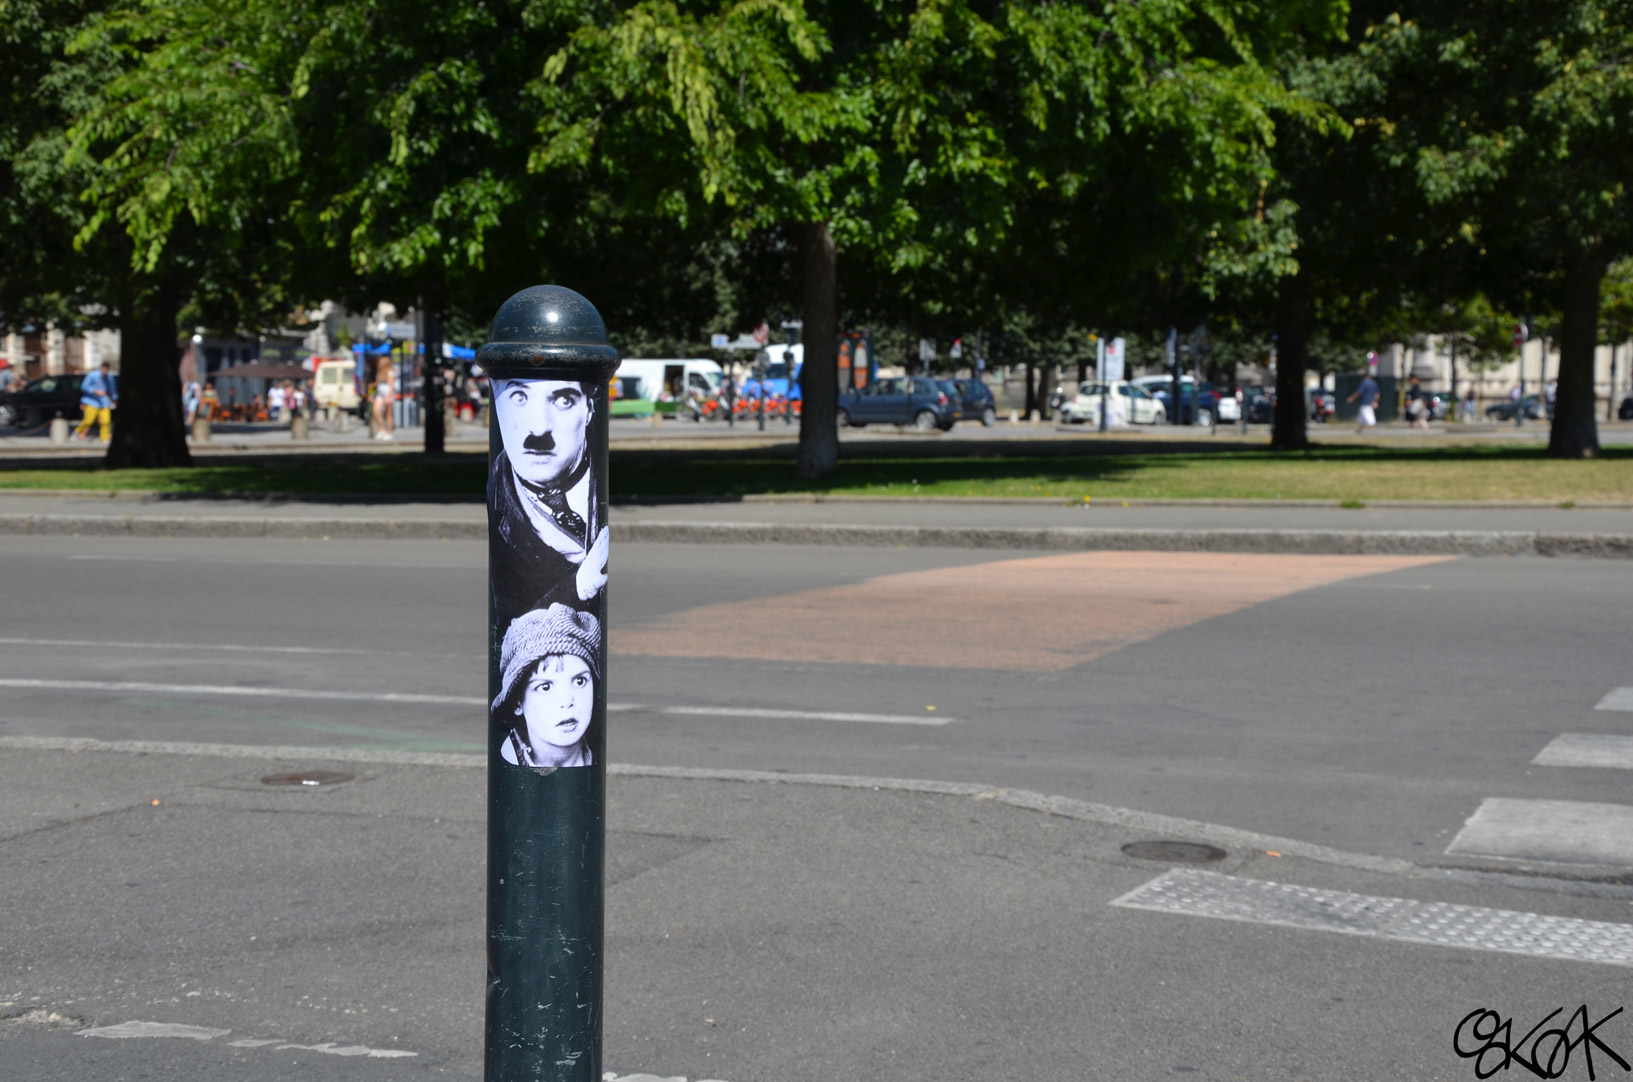 Charlie Chaplin and the Kid by Oakoak - Nantes, France, 2013